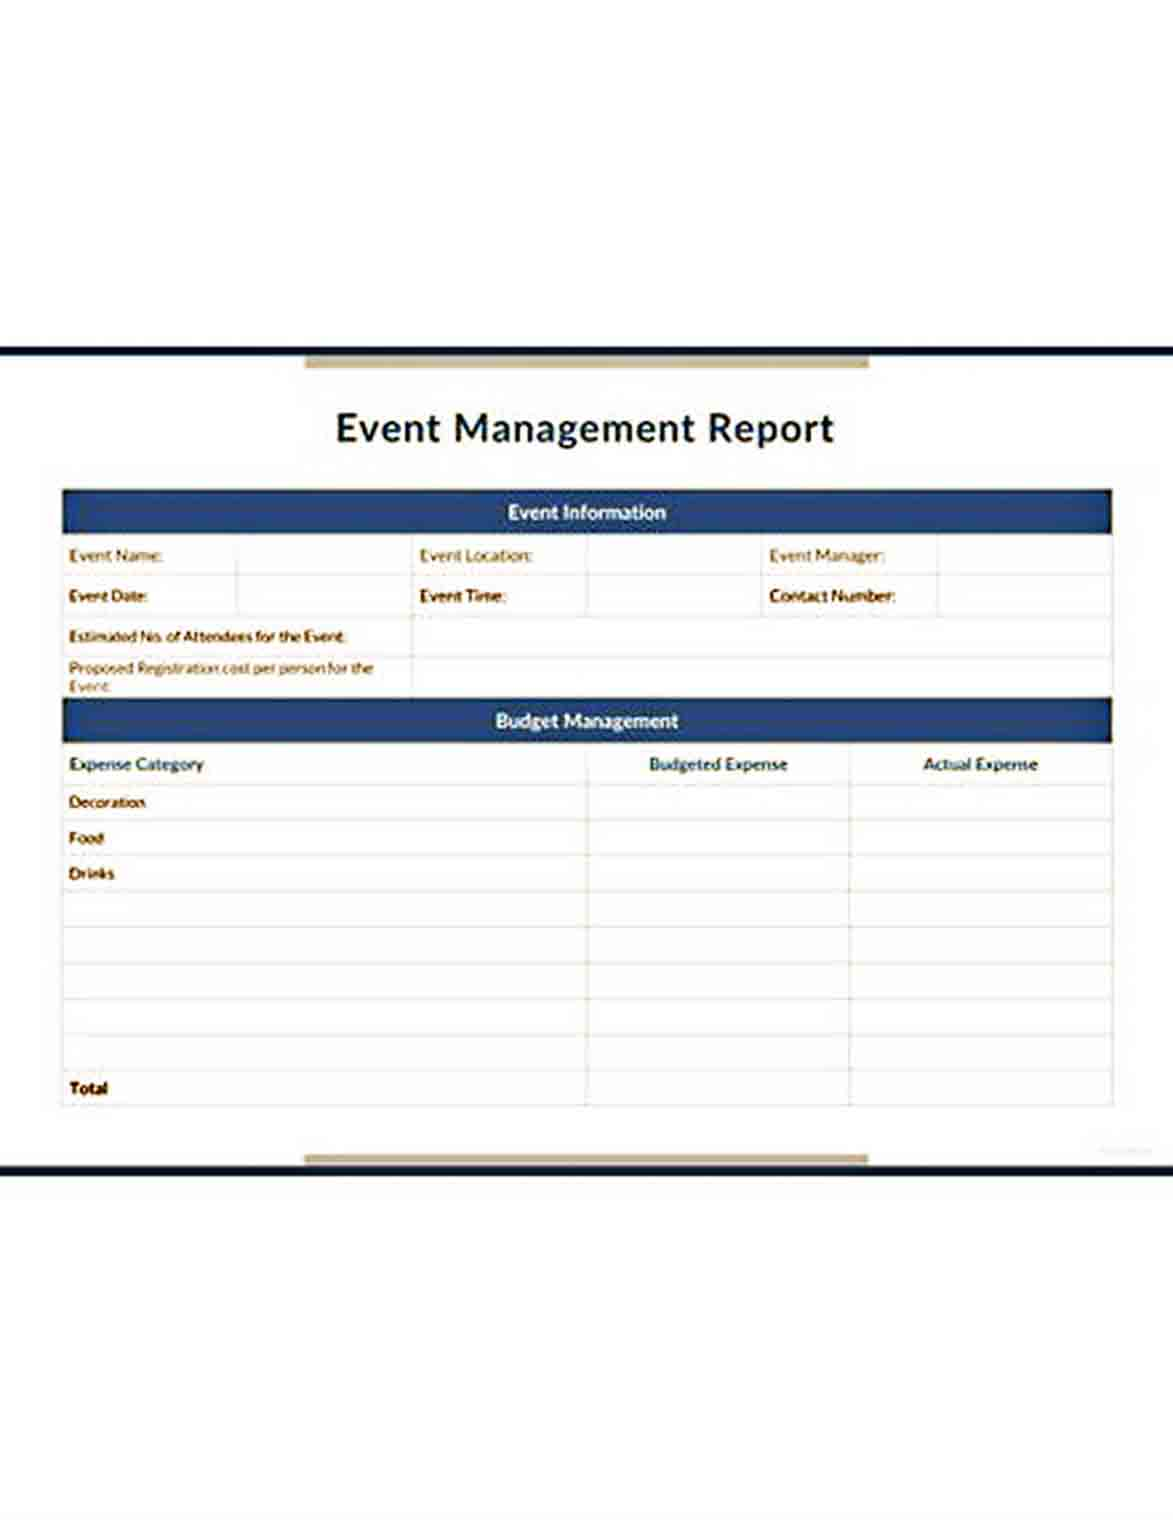 Templates Event Management Report 1 440x311 1